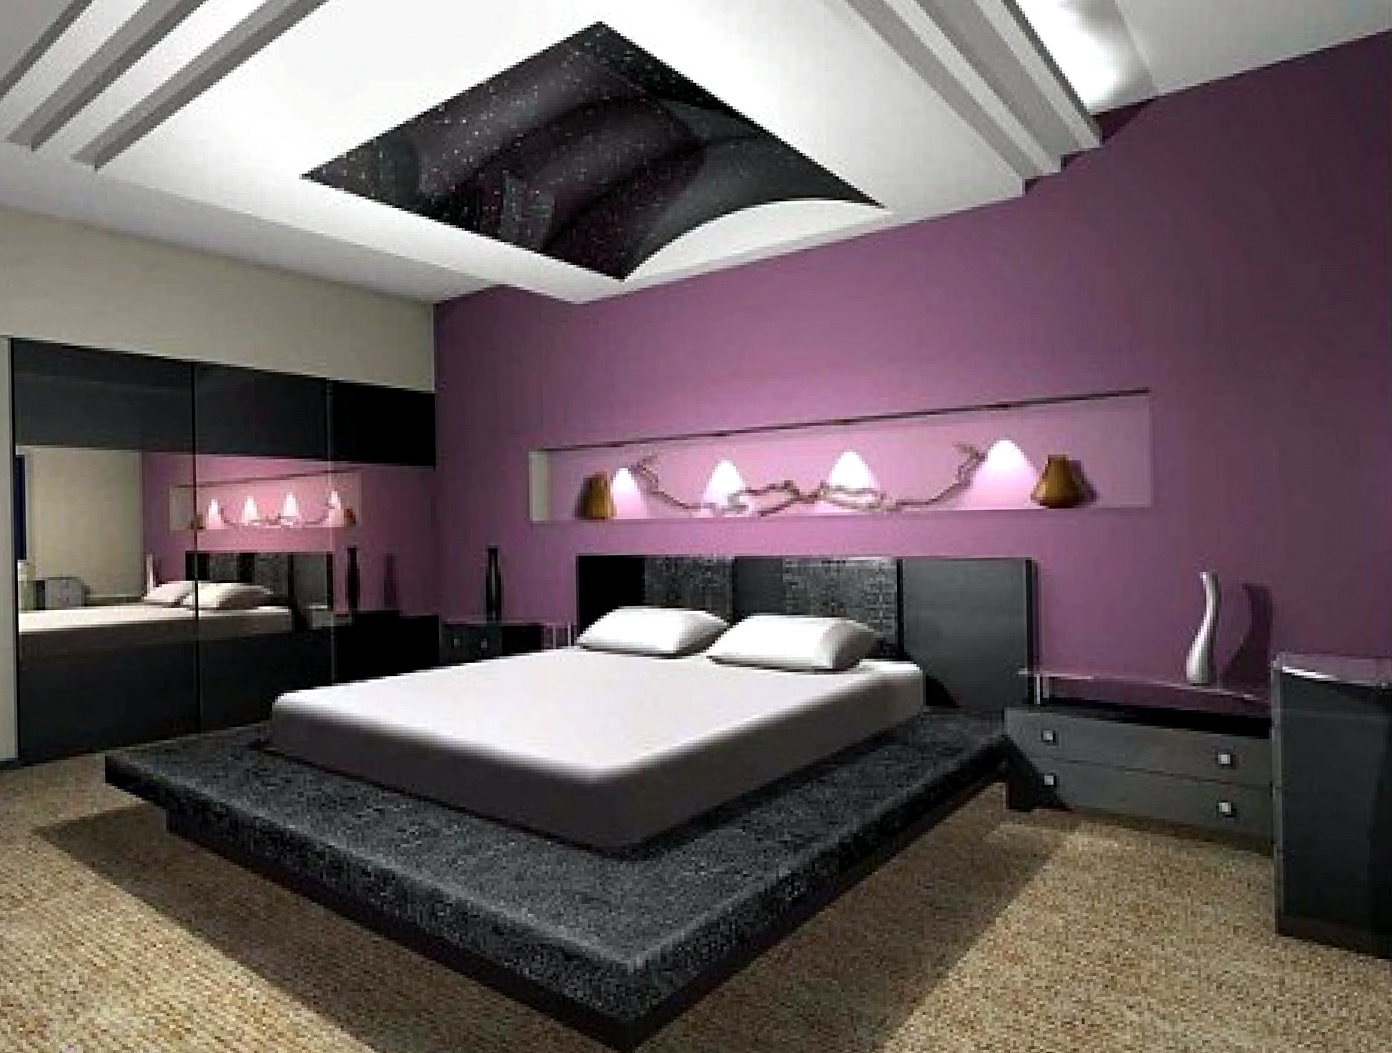 Bedroom Ideas For Women In Their 30s